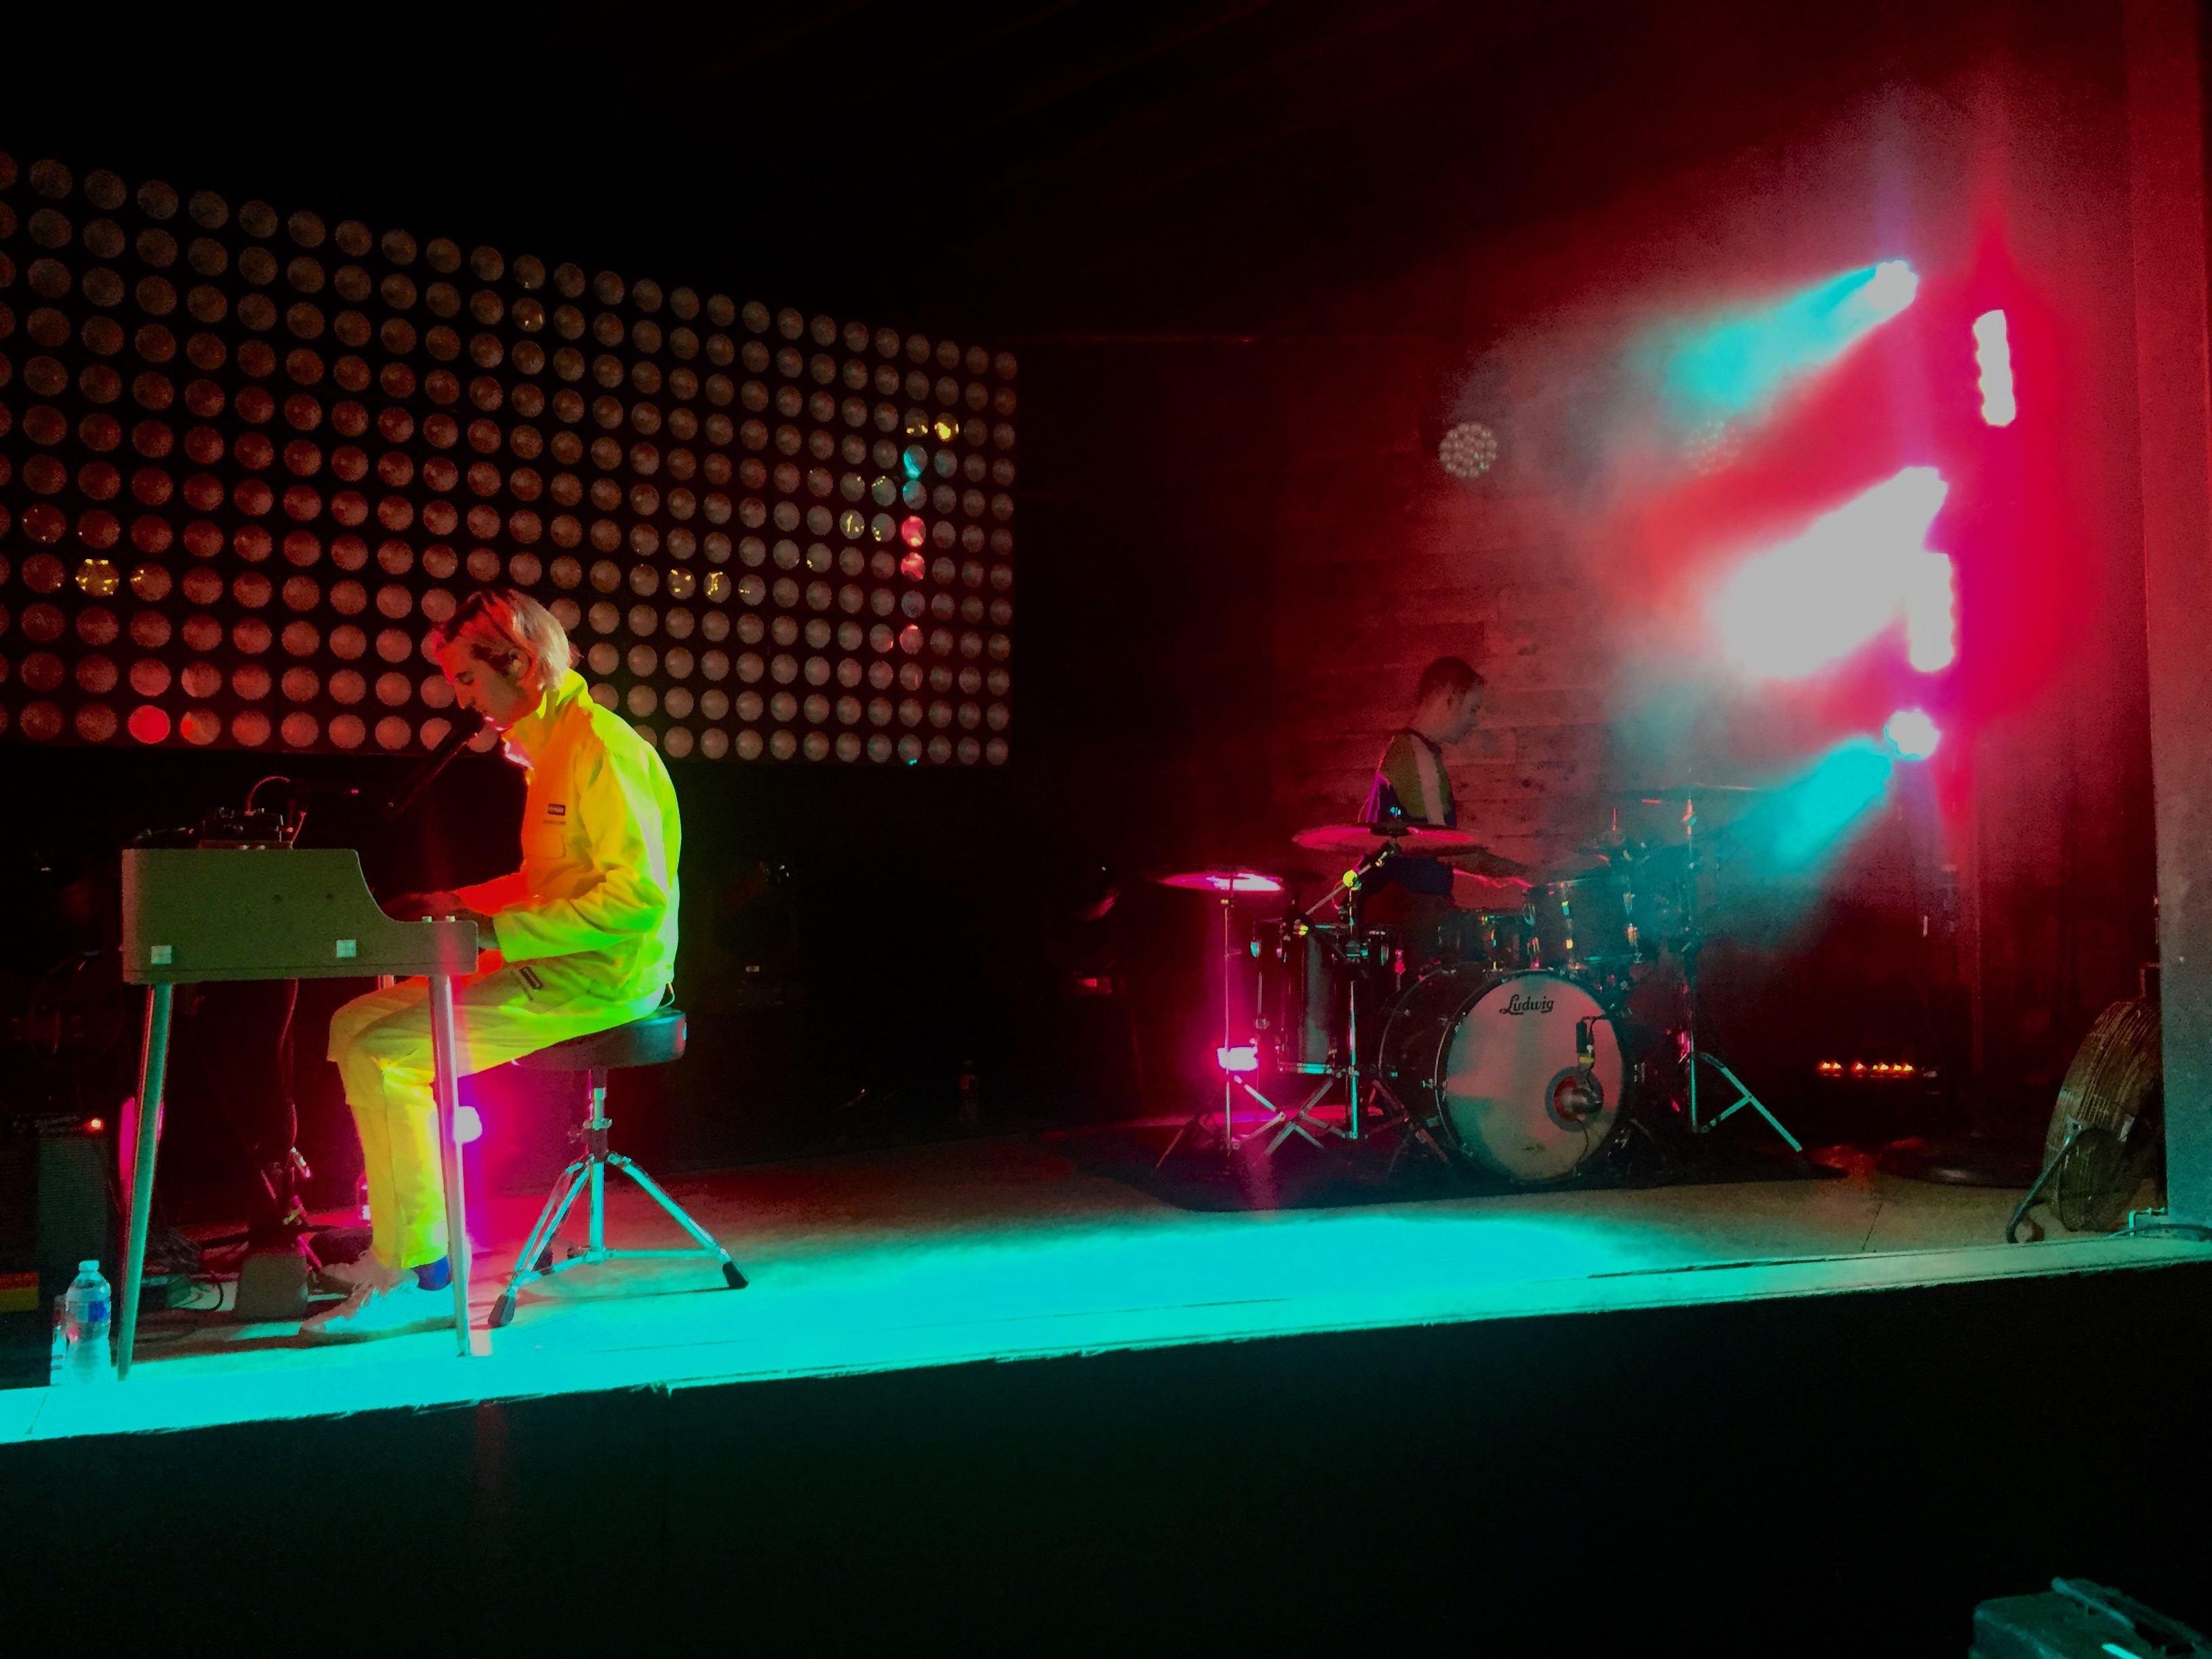 Two men performing on a stage. On the left, a man in a yellow jumpsuit plays an electric keyboard. On the far right, a man plays drums. Blue and red lights create a stark contrast.